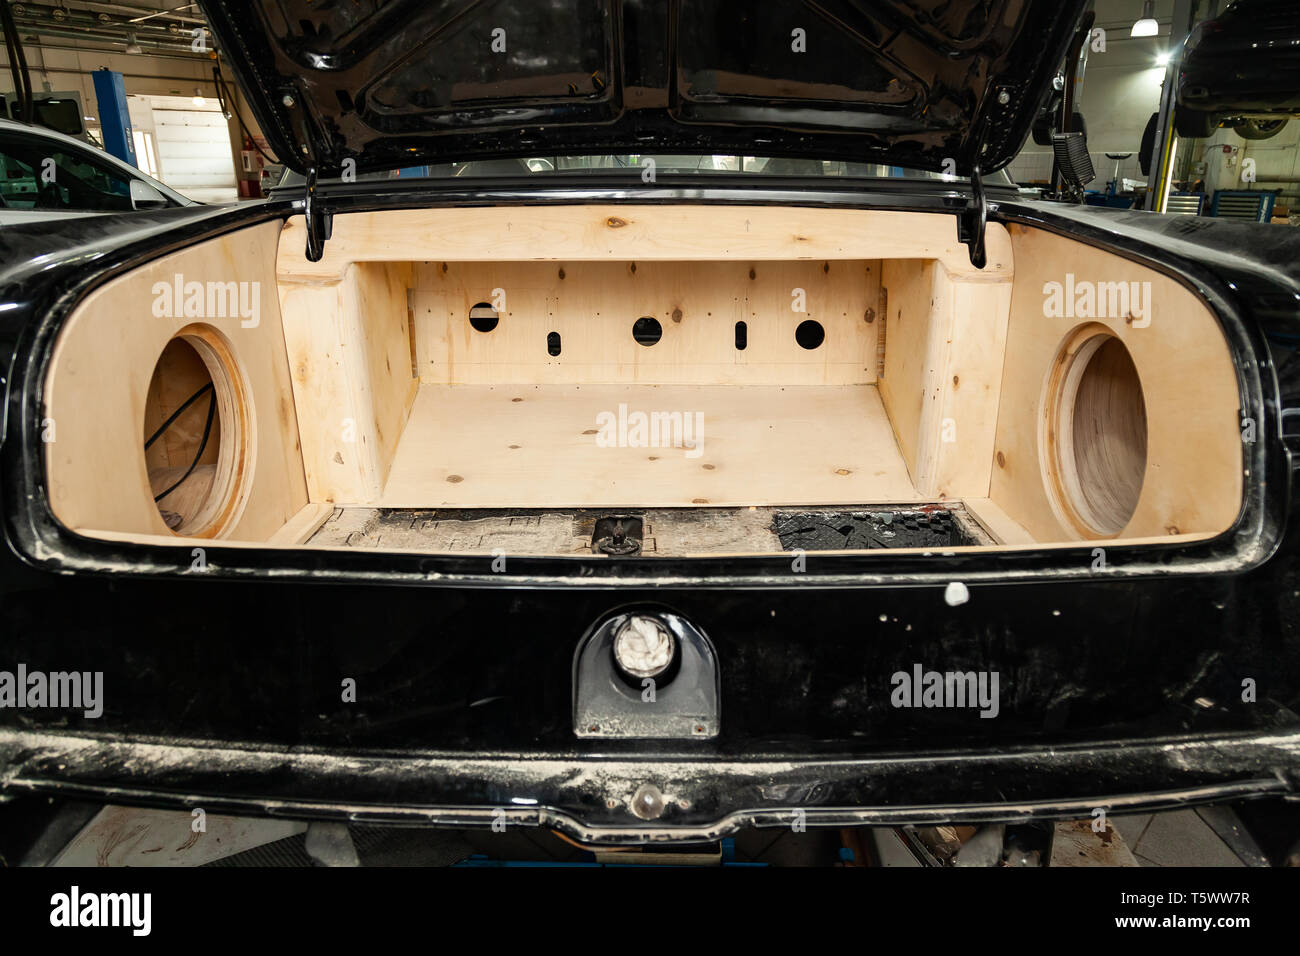 Trunk of a black car sedan with a box made of wood and sawn holes for the installation of subwoofers and speakers for an audio system with a loud soun - Stock Image